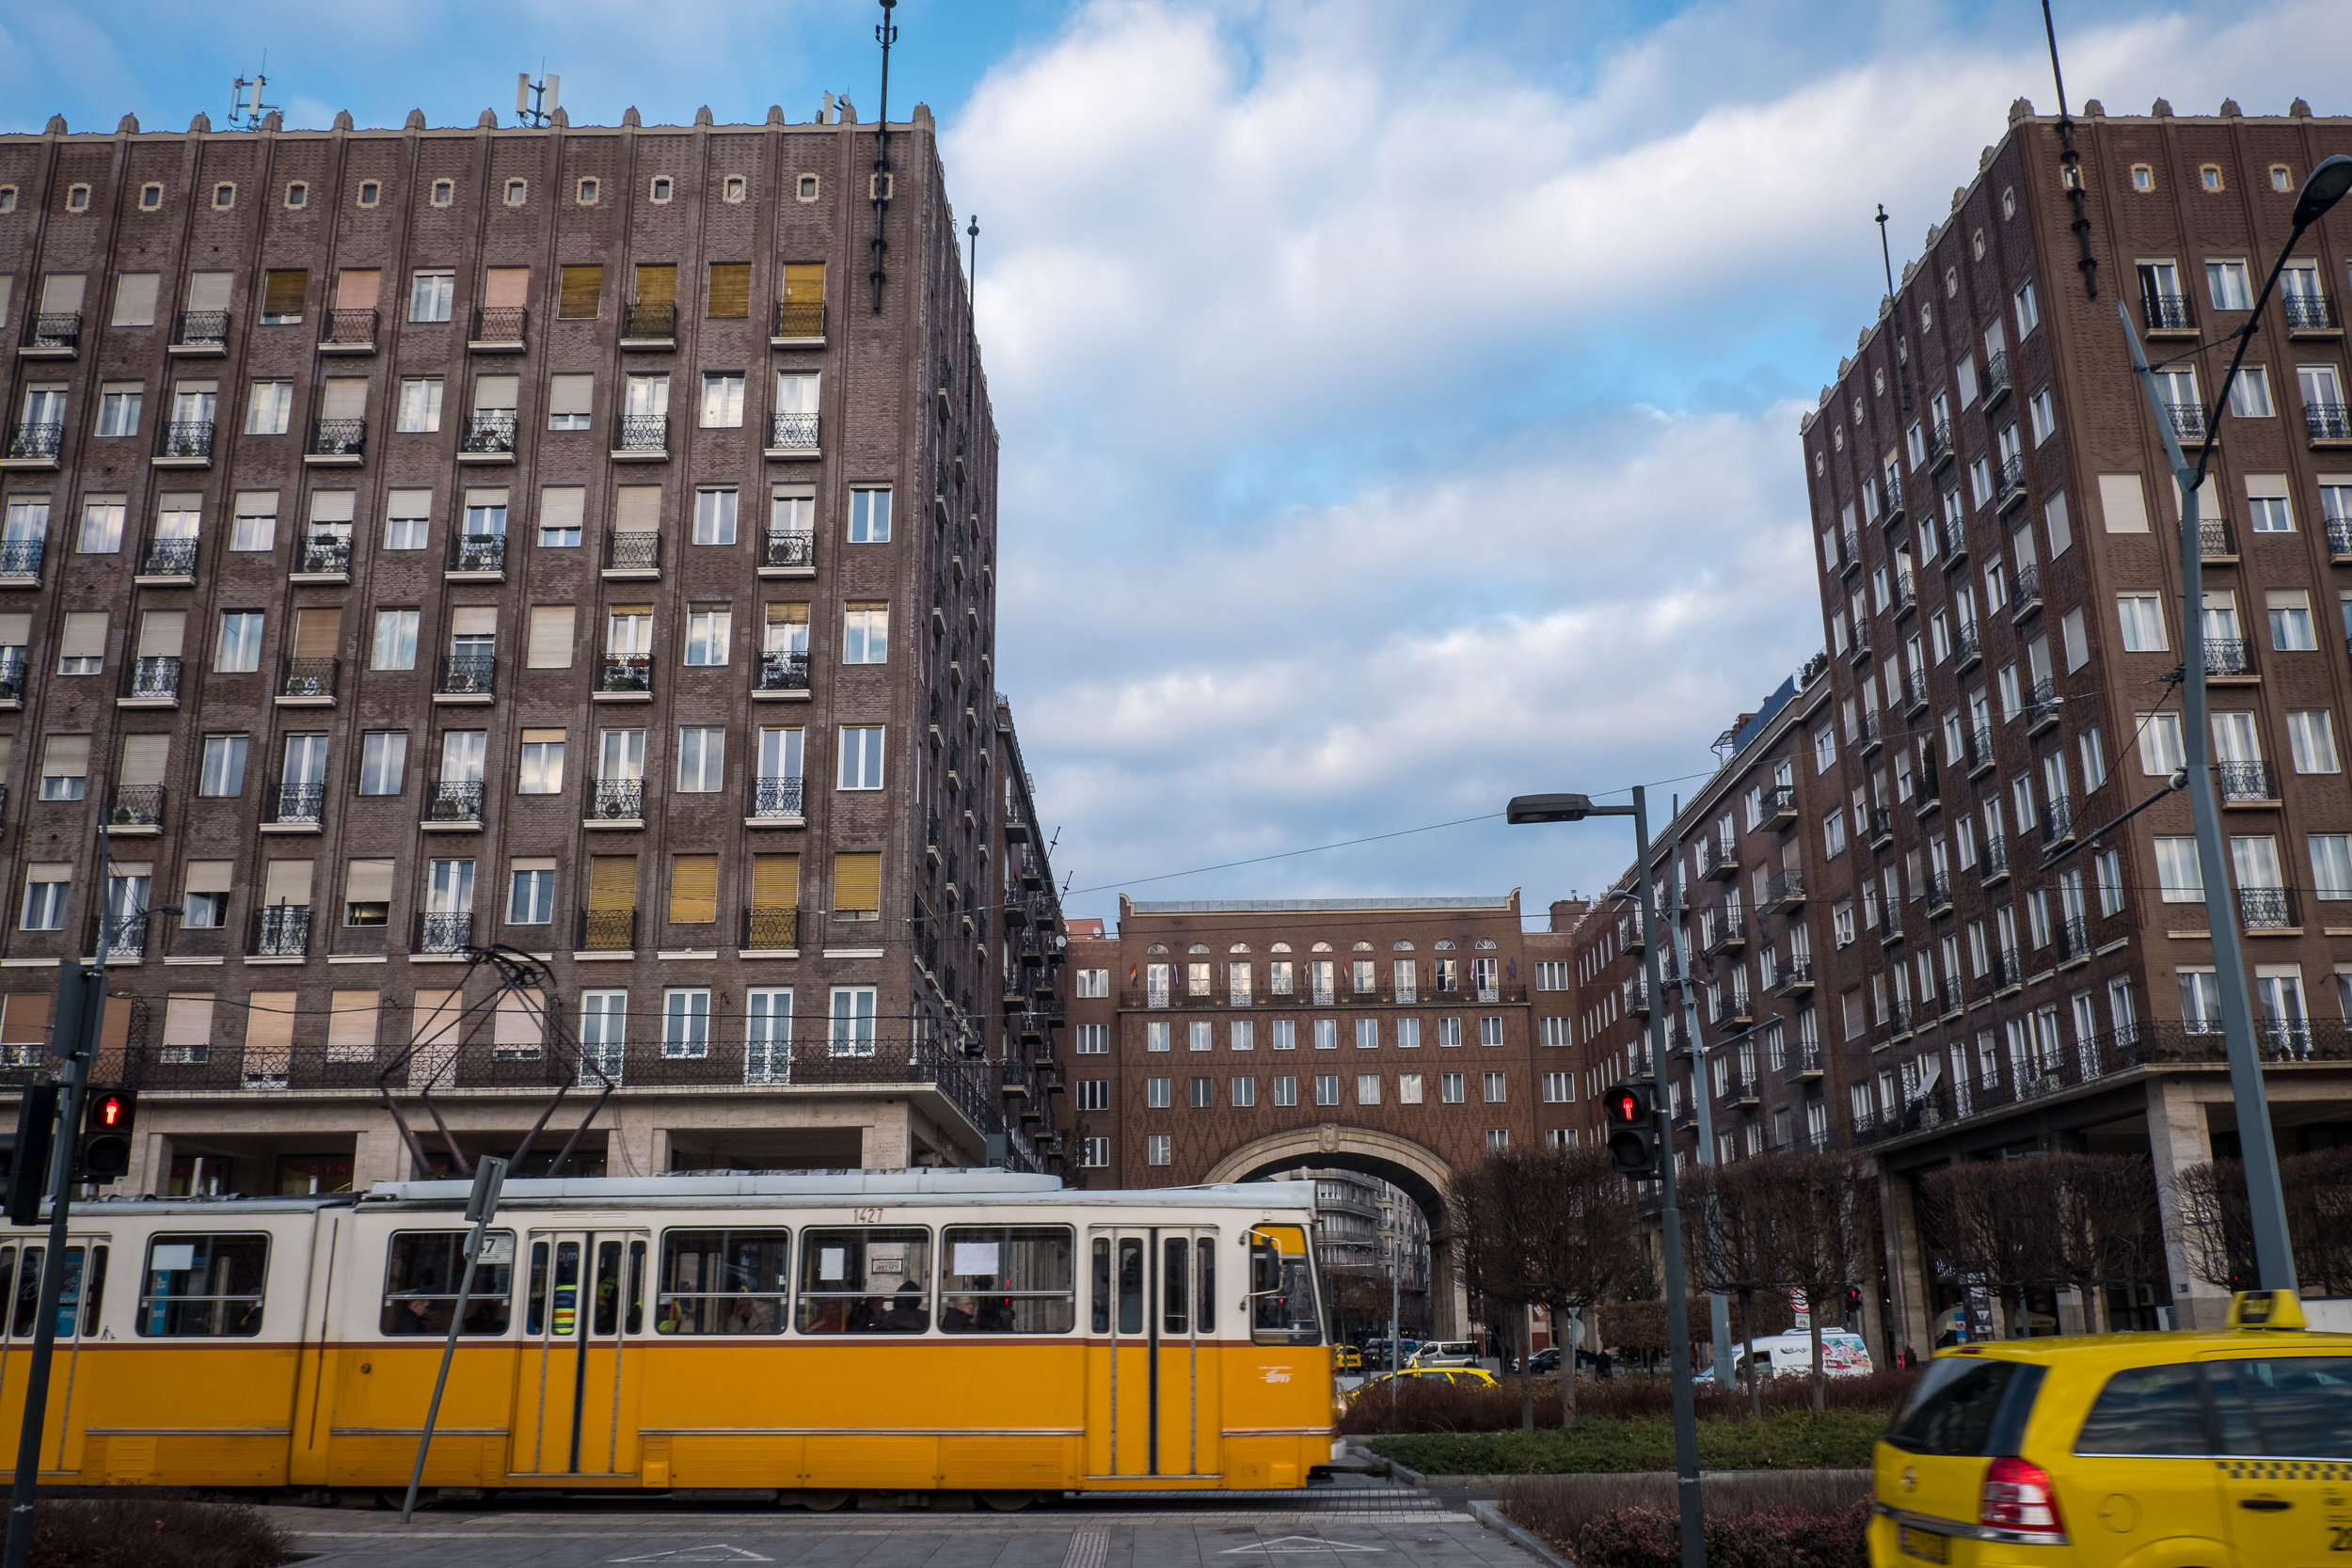 a tram passes Madách Imre Square (a very Hamburg/Chilehaus complex!)